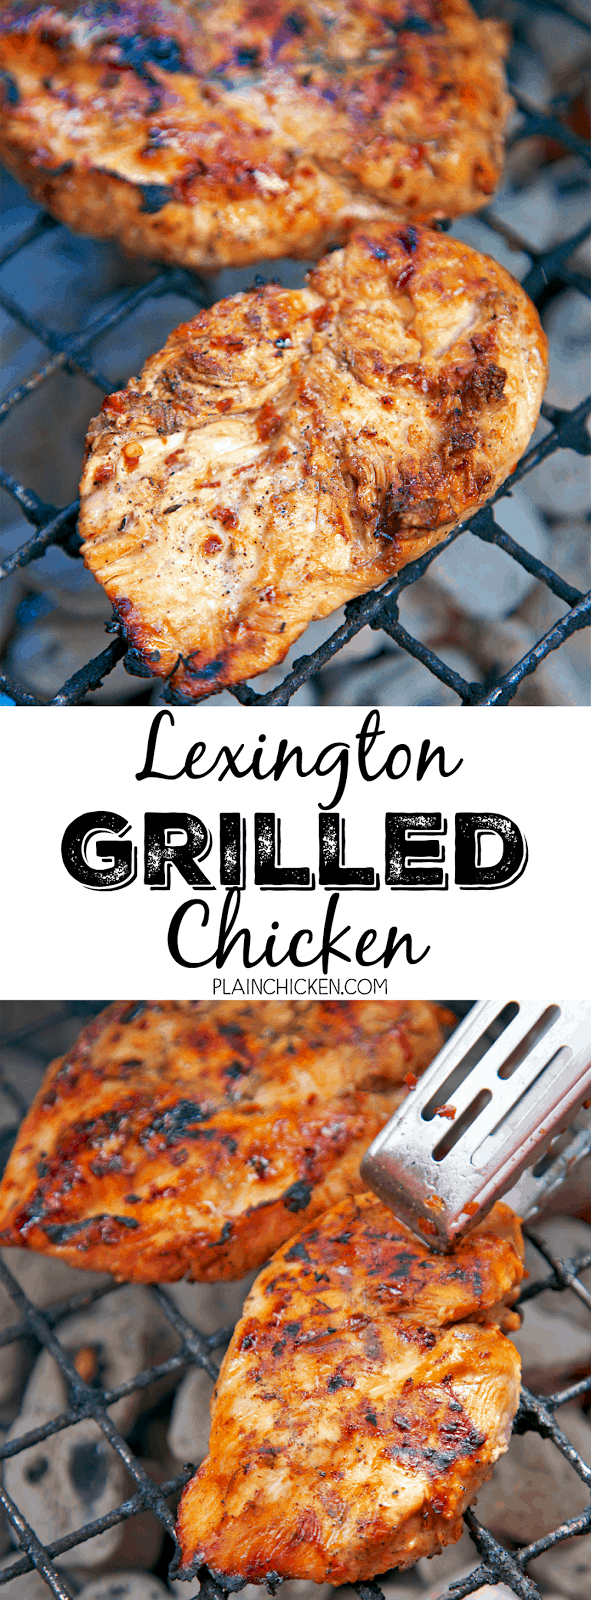 Lexington Grilled Chicken - sweet and tangy grilled chicken! Only 6 ingredients in the marinade - cider vinegar, brown sugar, oil, red pepper flakes, salt and pepper - Perfect for a cookout! Everyone raves about this chicken. There are never any leftovers!!